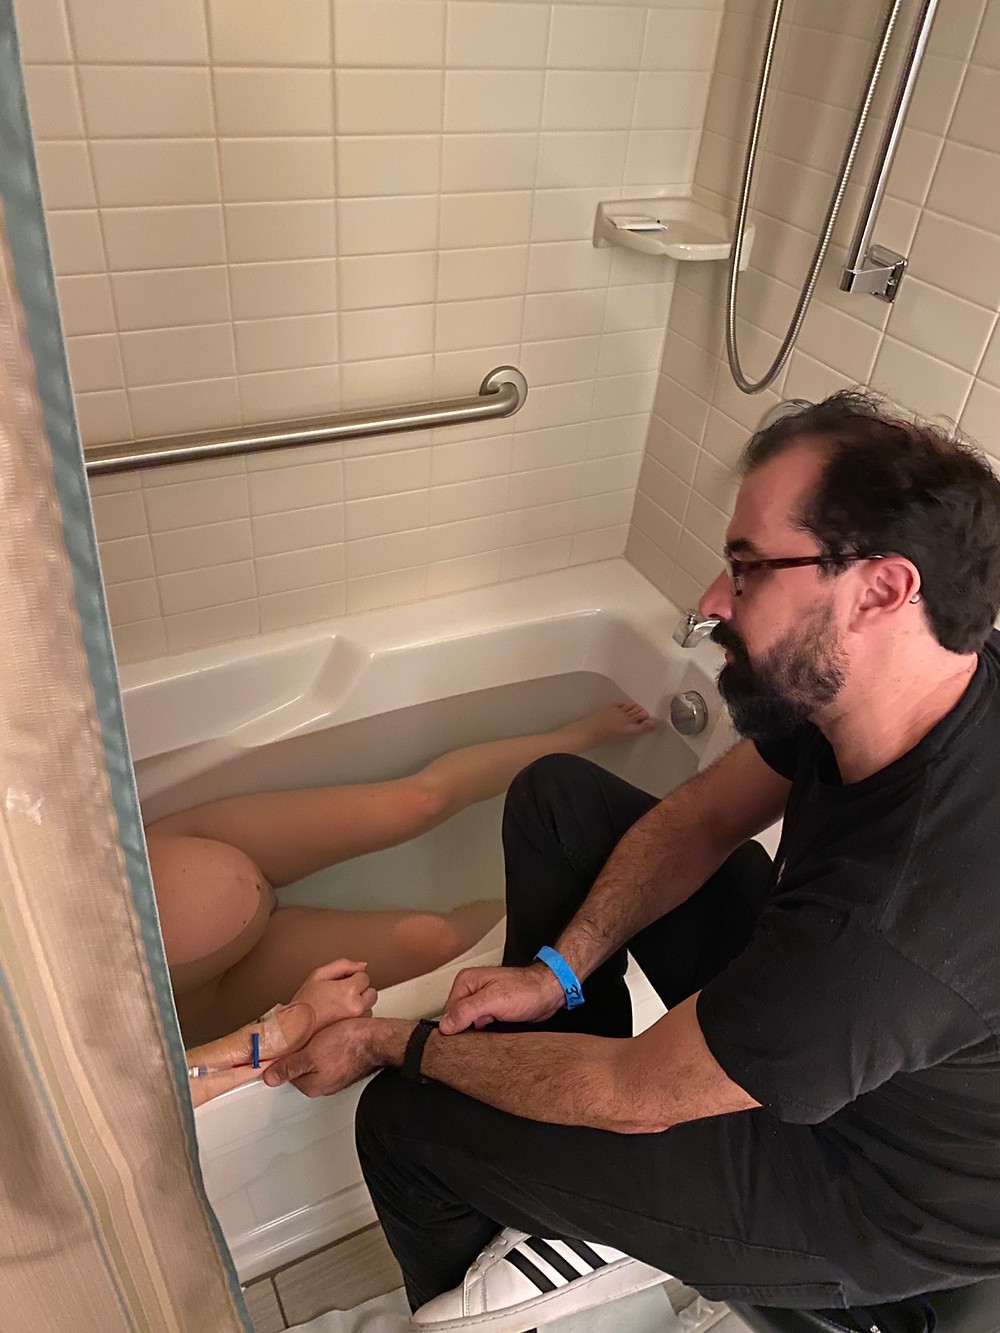 Dad supports mom through contractions in tub.